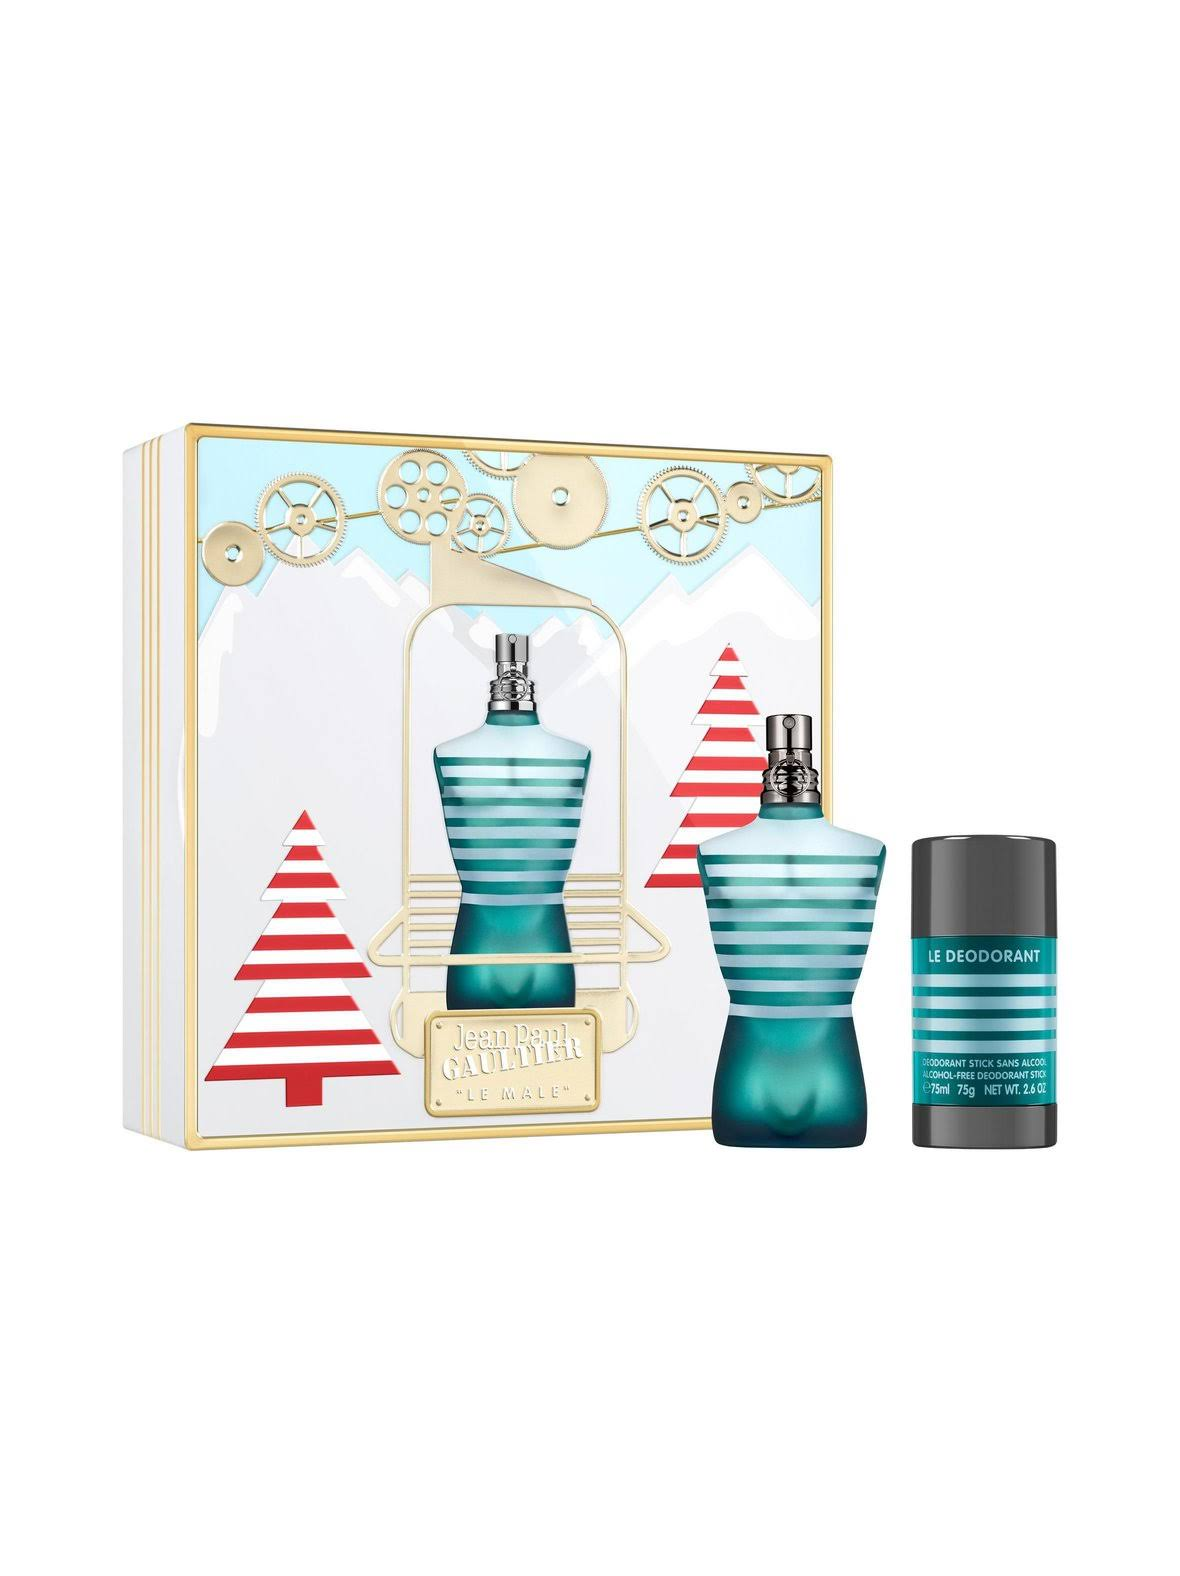 Jean Paul Gaultier Le Male Eau De Toilette 75ml Gift Set